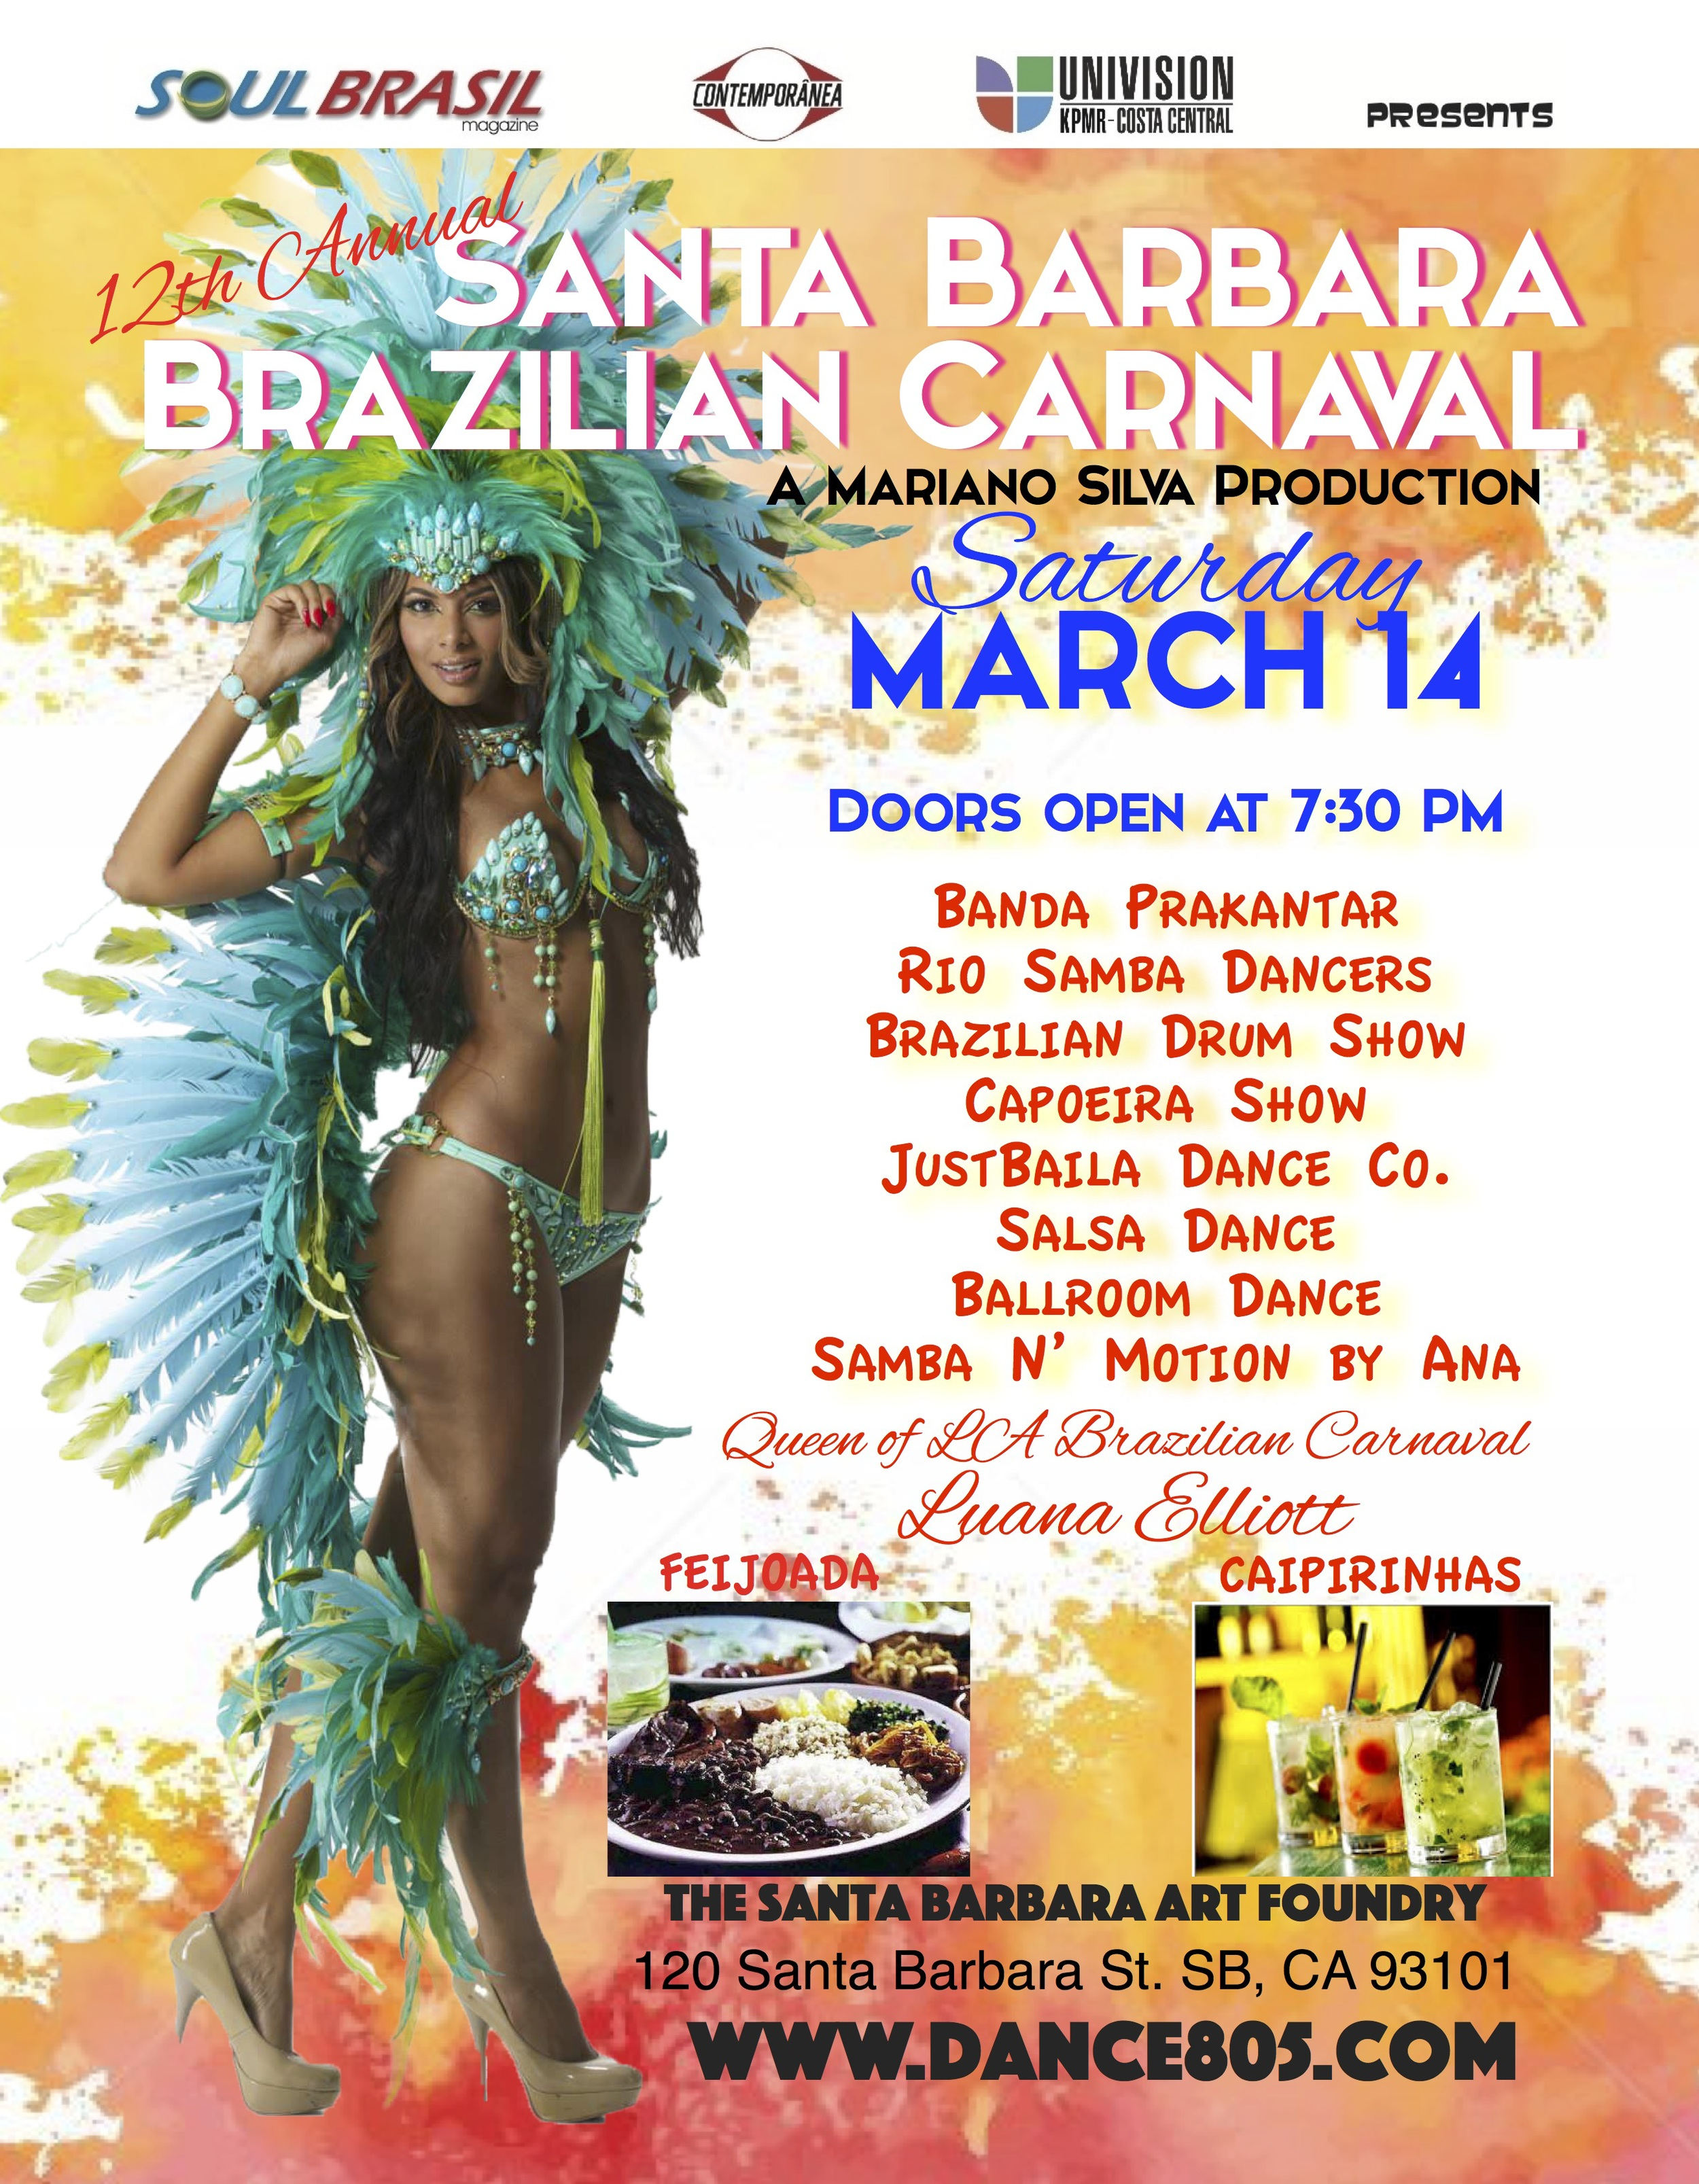 12th-Annual-Santa-Barbara-Brazilian-Carnaval